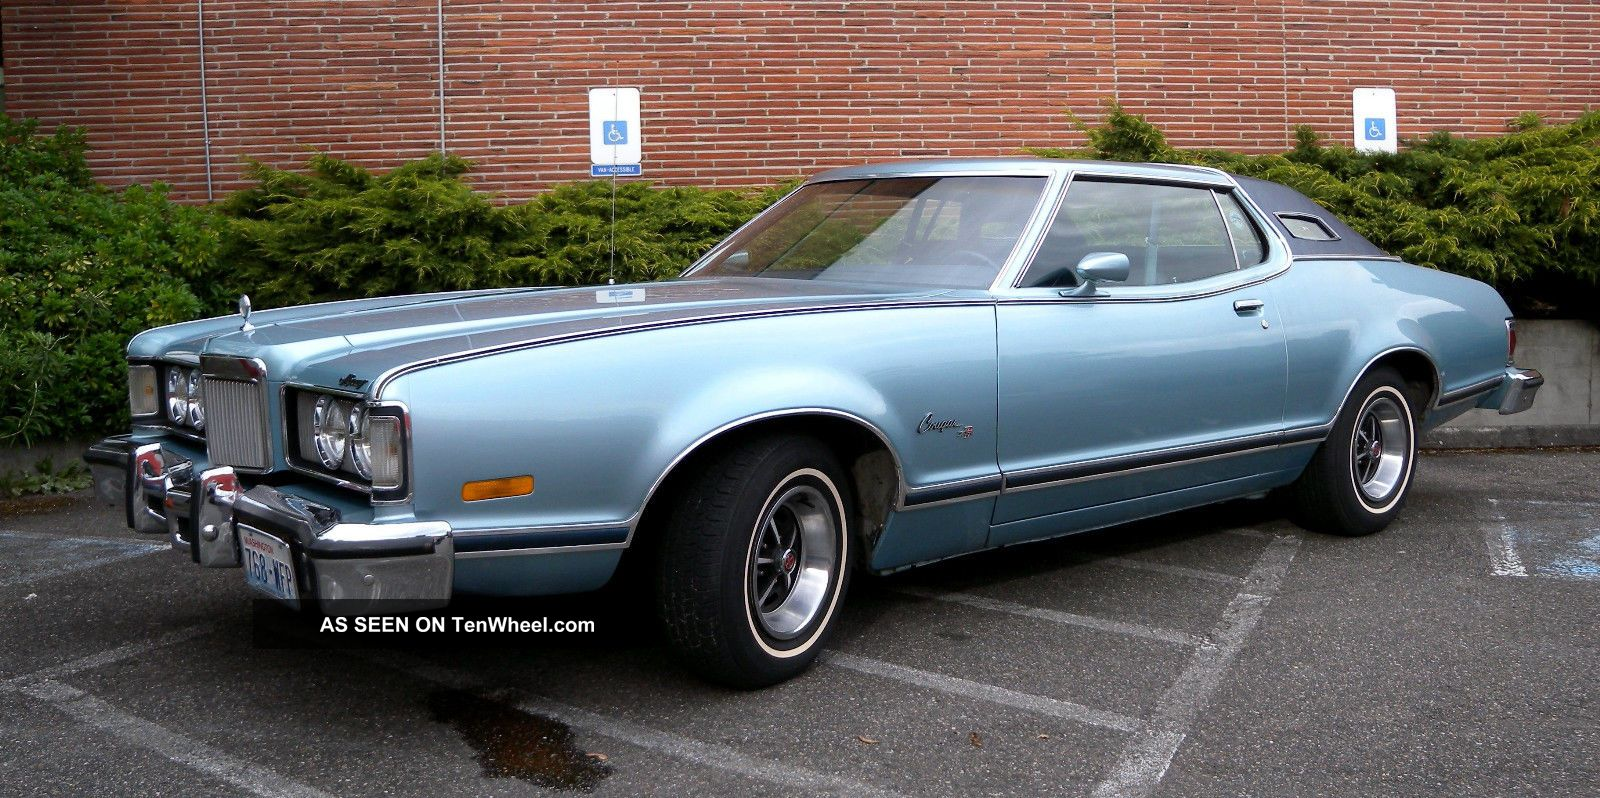 1976 mercury cougar xr7 blue landau 2 door 94 700 mi all. Black Bedroom Furniture Sets. Home Design Ideas